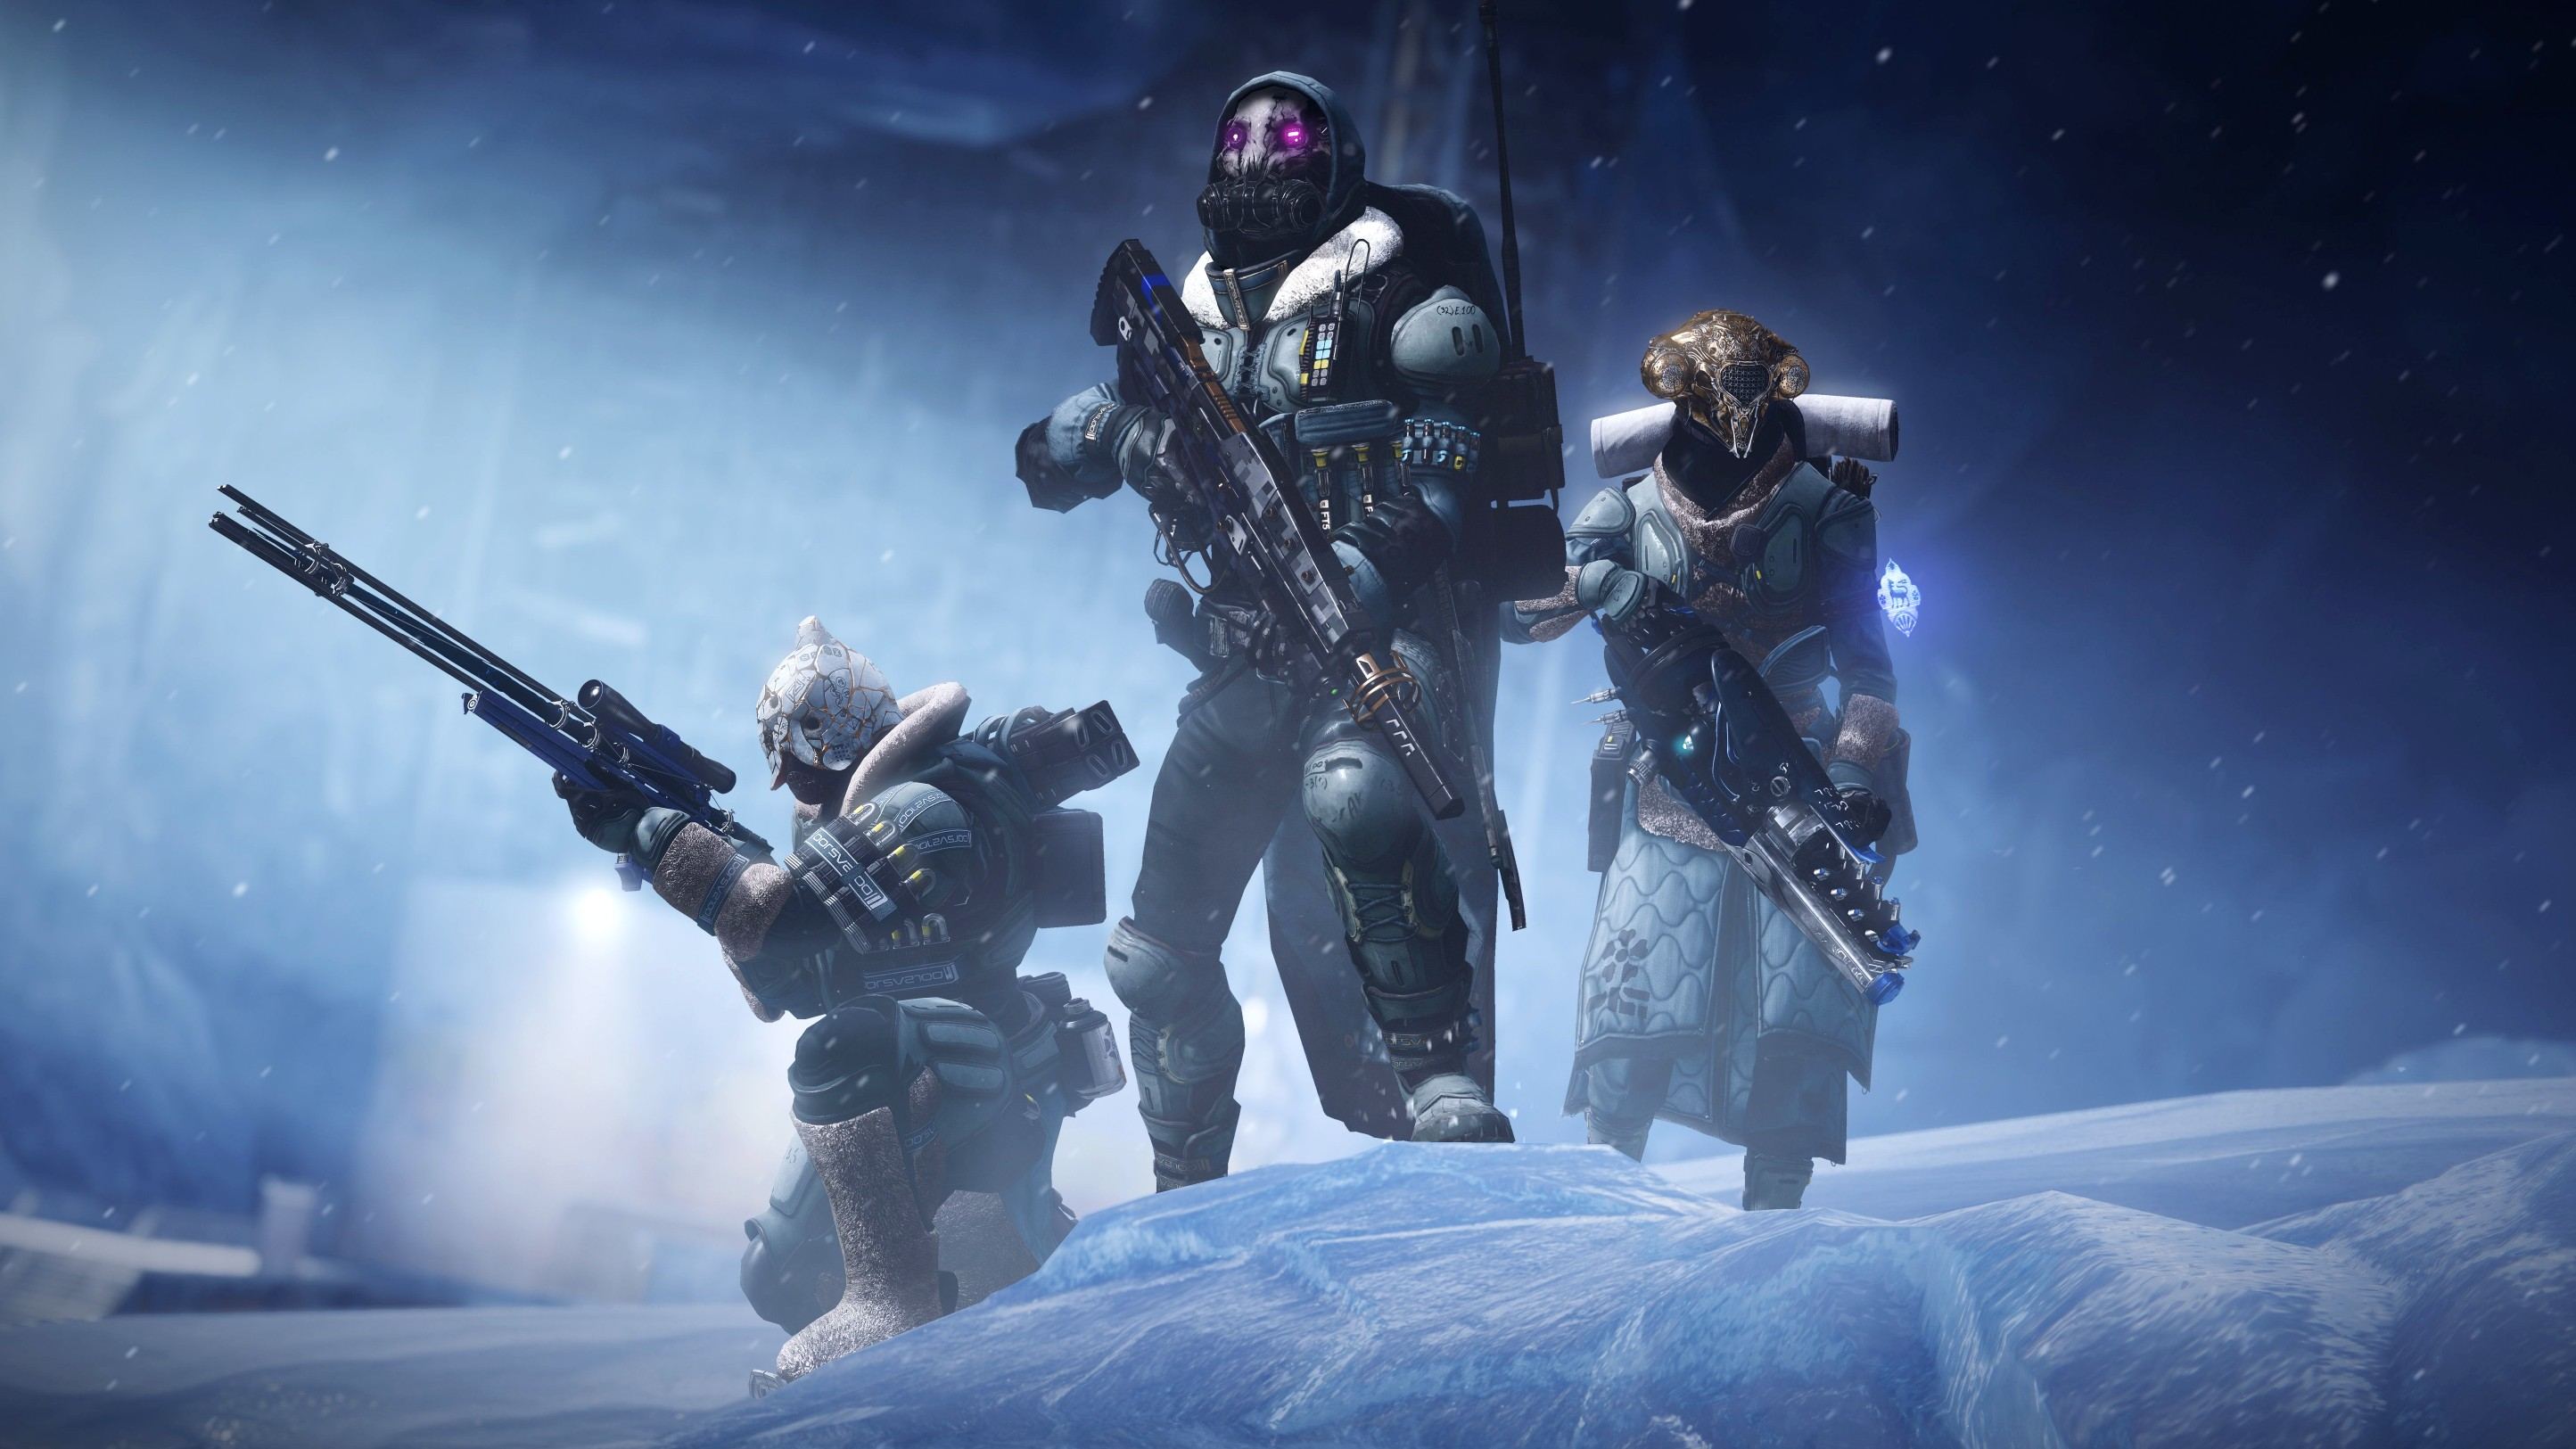 How to create a powerful Destiny 2 'Charged with Light' build that works anywhere